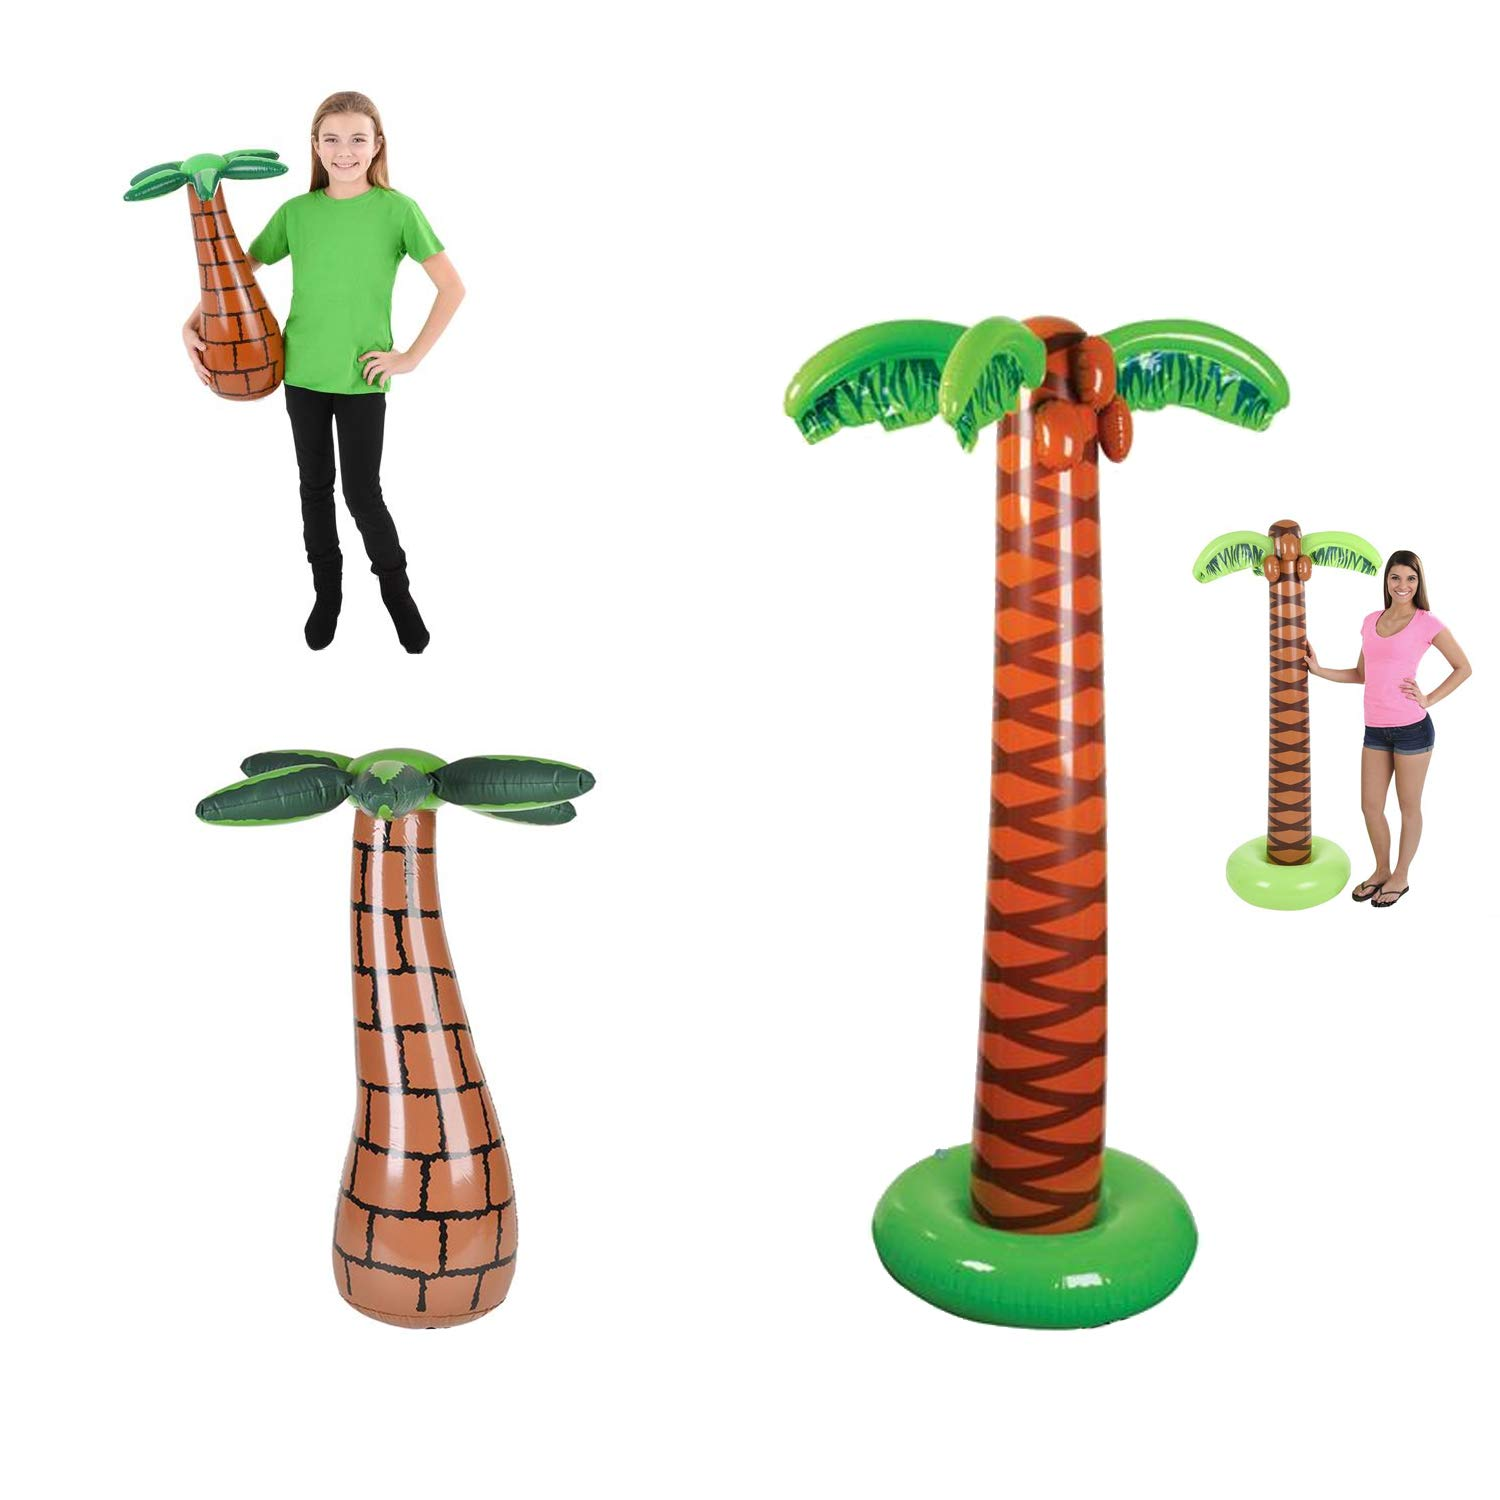 Favonir Inflatable Palm Tree 2-Pack - Blow Up Palm Trees Set for Luau Party Decor - 27-Inch & 66-Inch Inflatable Decorations for Hawaiian Tiki Party, Beach Party, Tropical Hawaii Theme Backyard Party